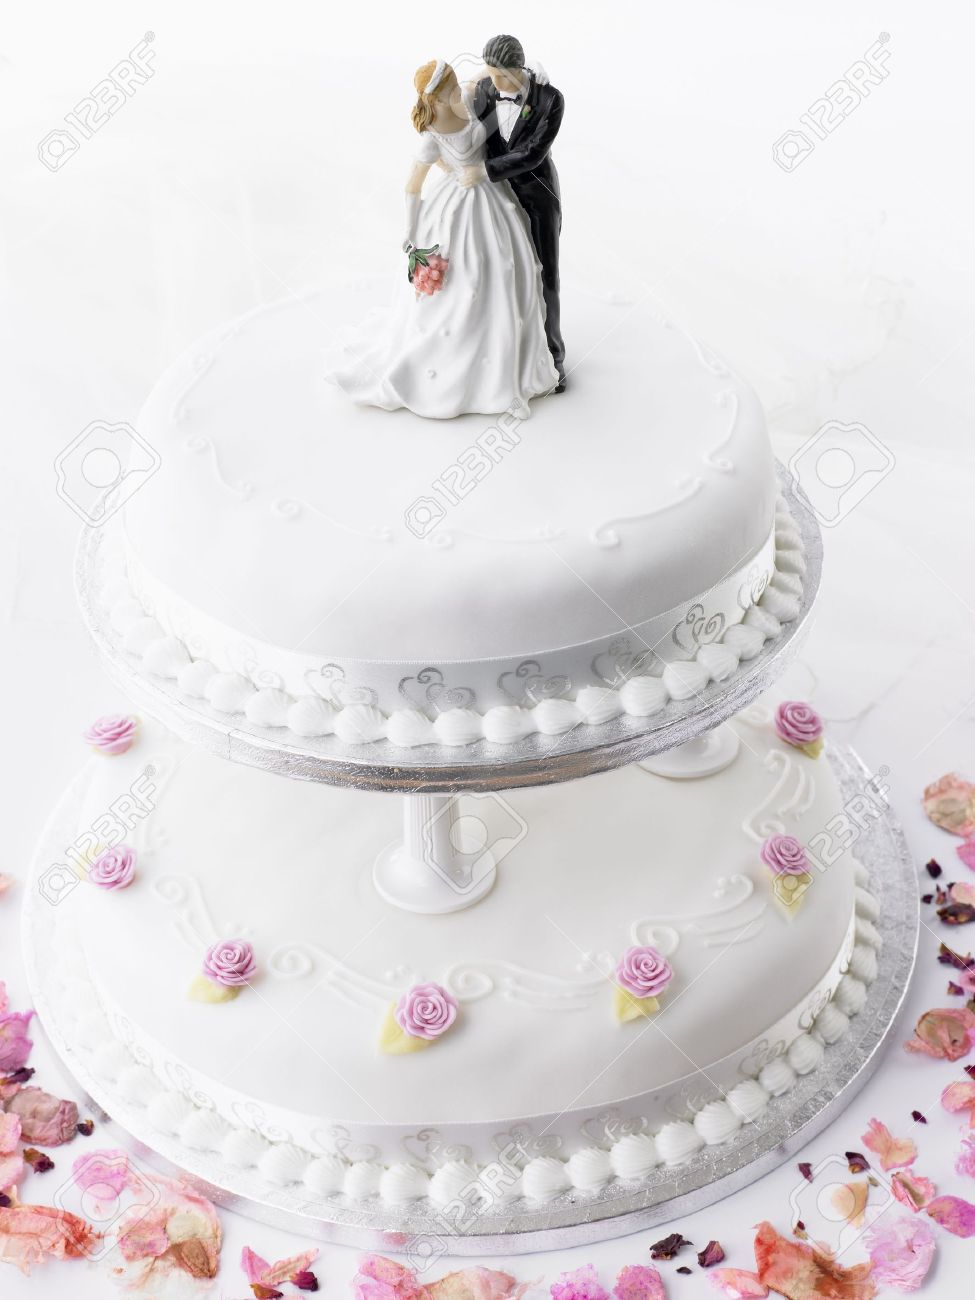 Wedding Cake With Bride And Groom Figurines Stock Photo - 4638858